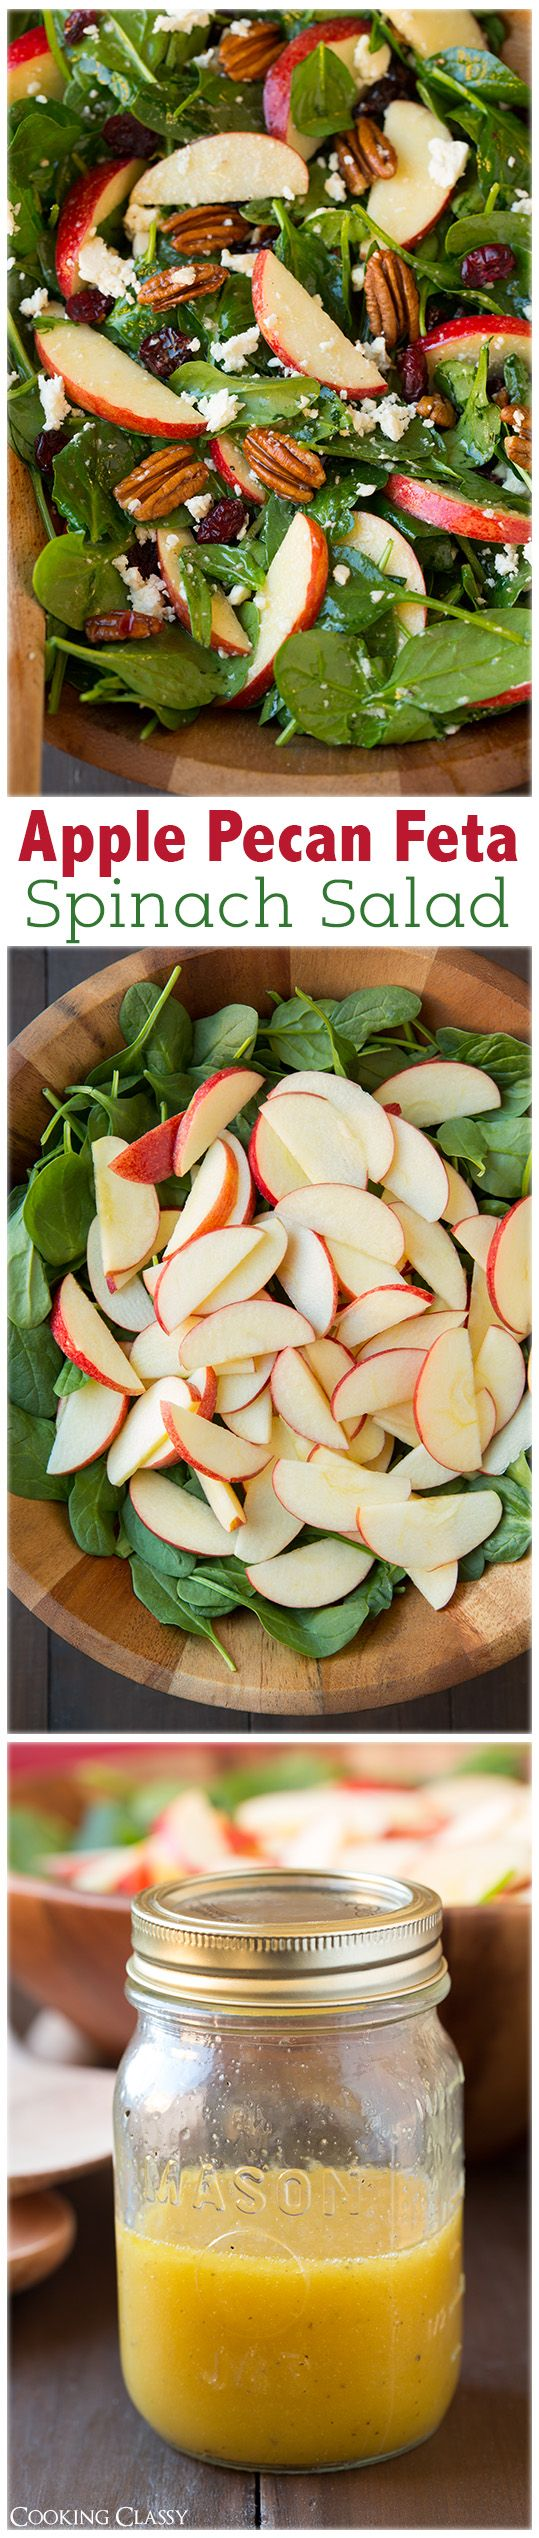 Apple Pecan Feta Spinach Salad with Maple Cider Vinaigrette - this salad is a must try recipe! Highly recommend adding the bacon too. Tried it, loved it on my Weekly Pinterest Meal Planner Round Up Frosted Events www.frostedevents...